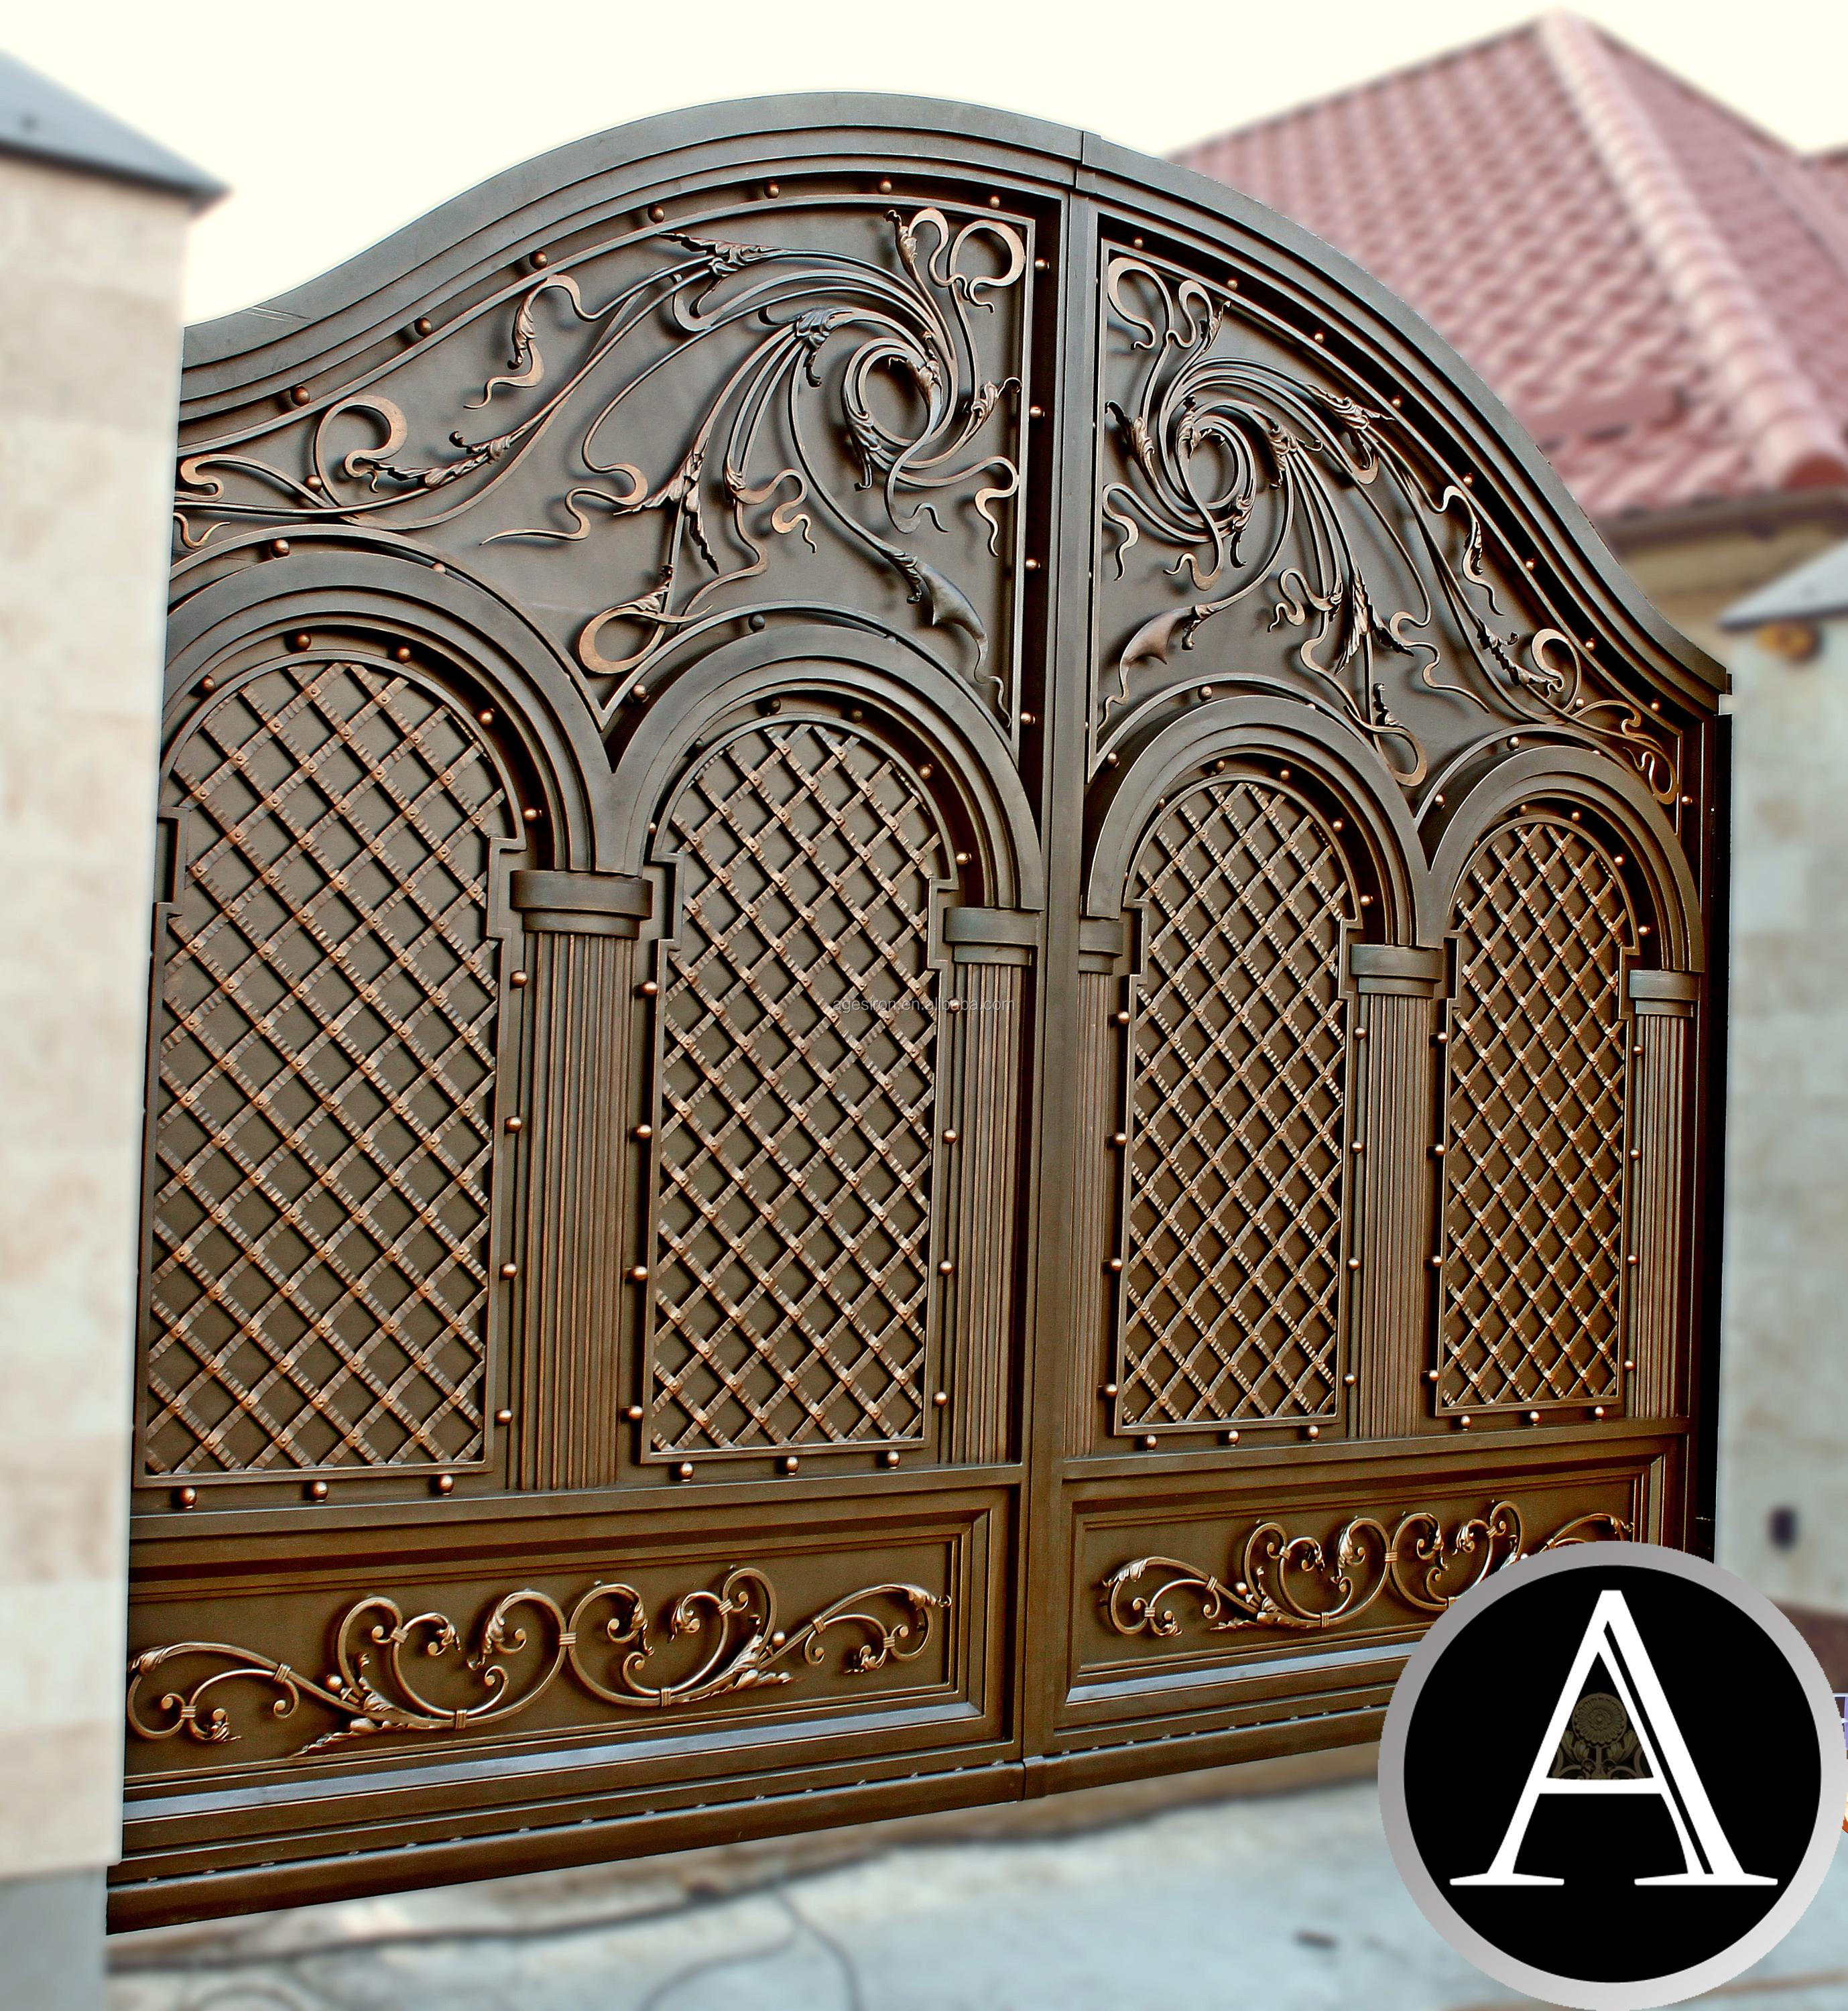 Source steel simple house gate designs on malibabacom t for Main gate designs for farmhouse